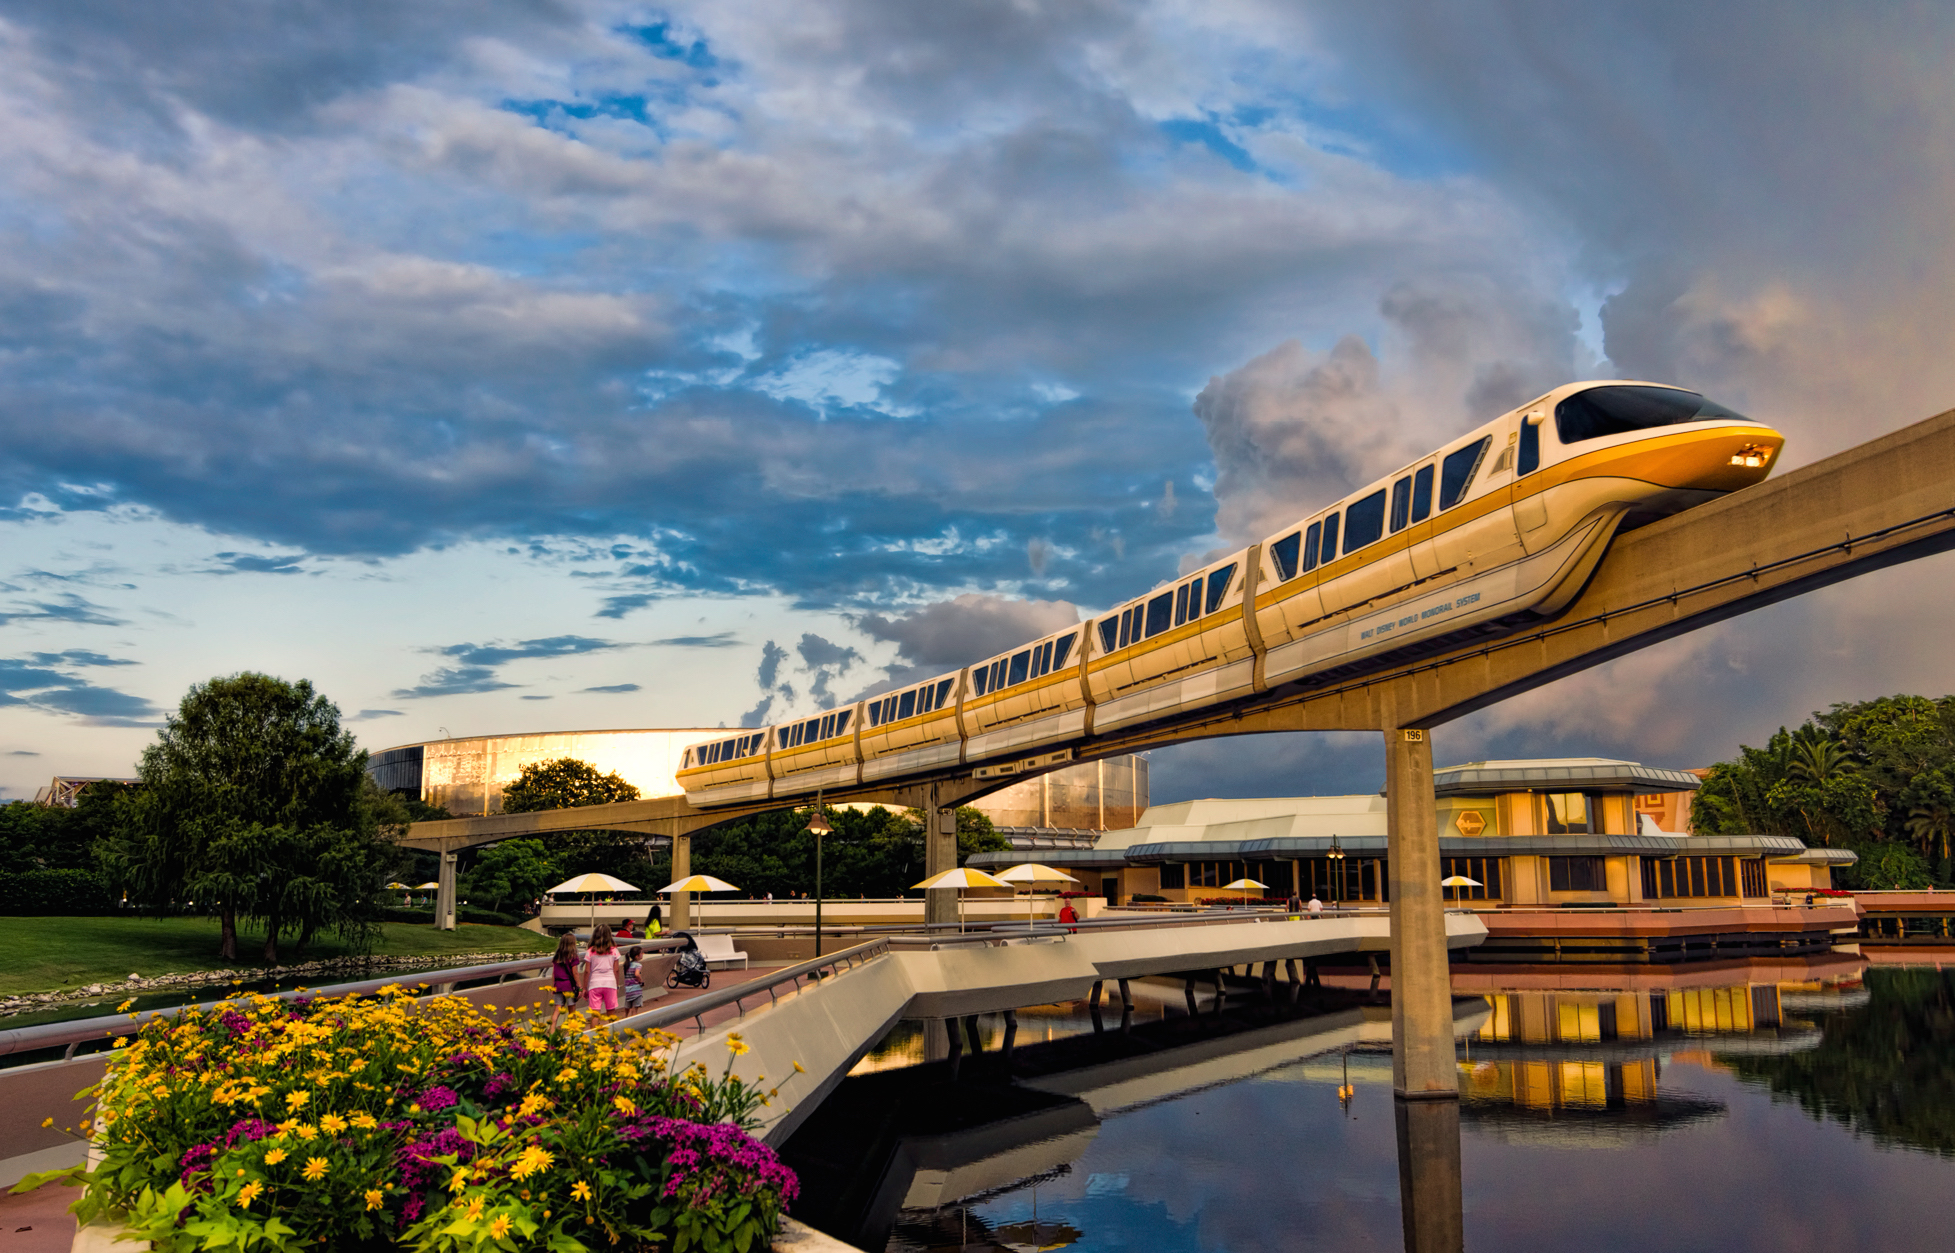 Don't be alarmed, but a part of Disney World's monorail just *fell off*